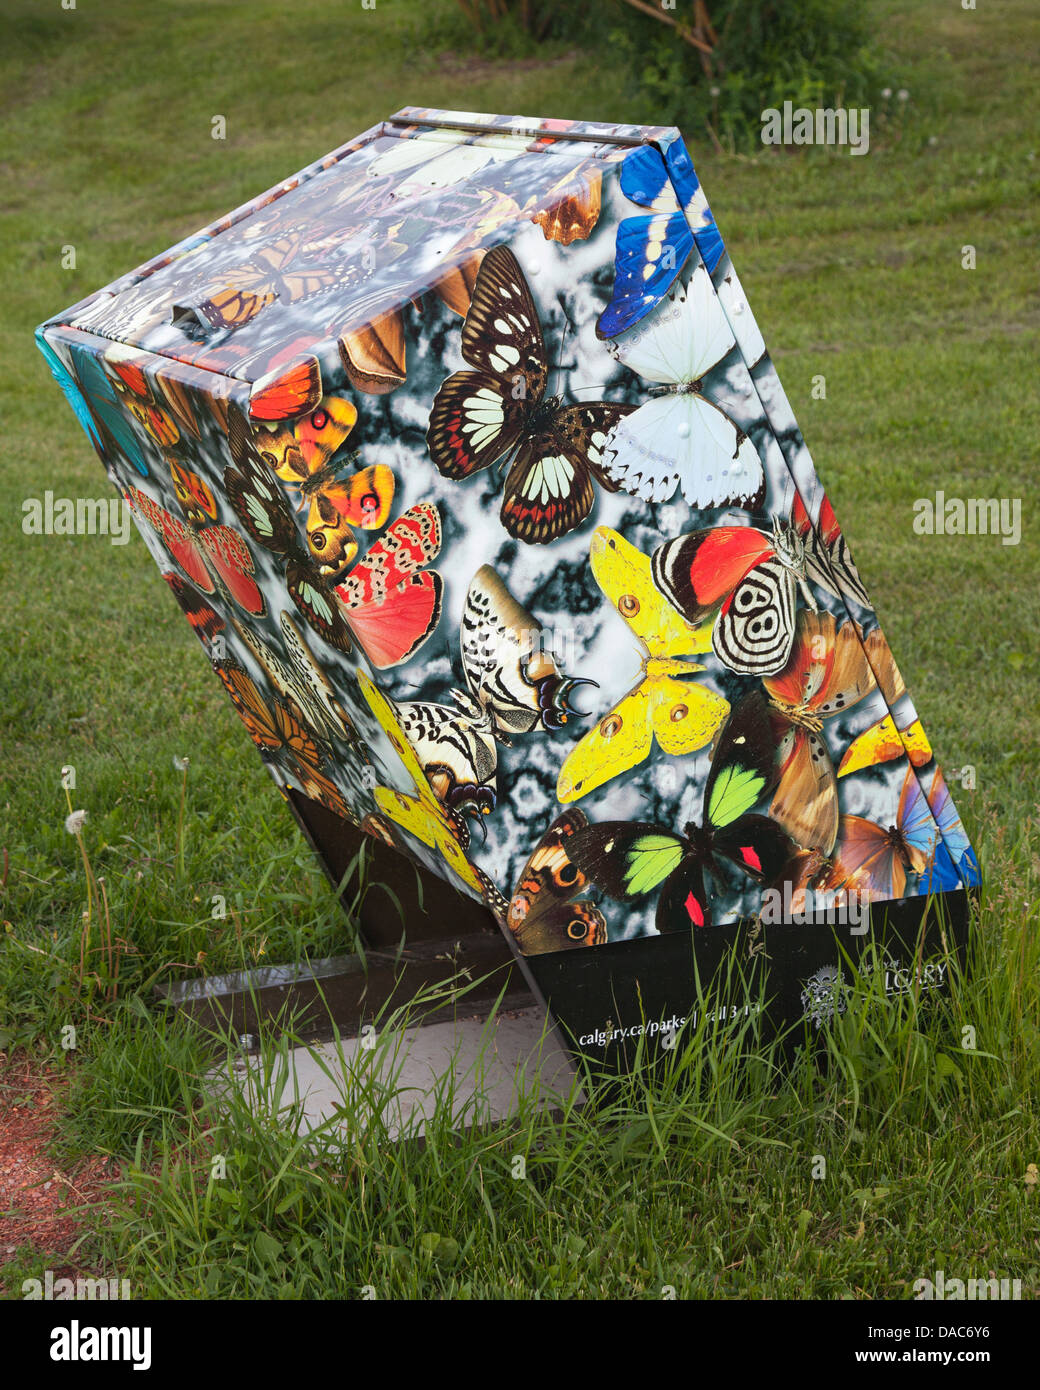 Garbage can decorated with butterflies - Stock Image